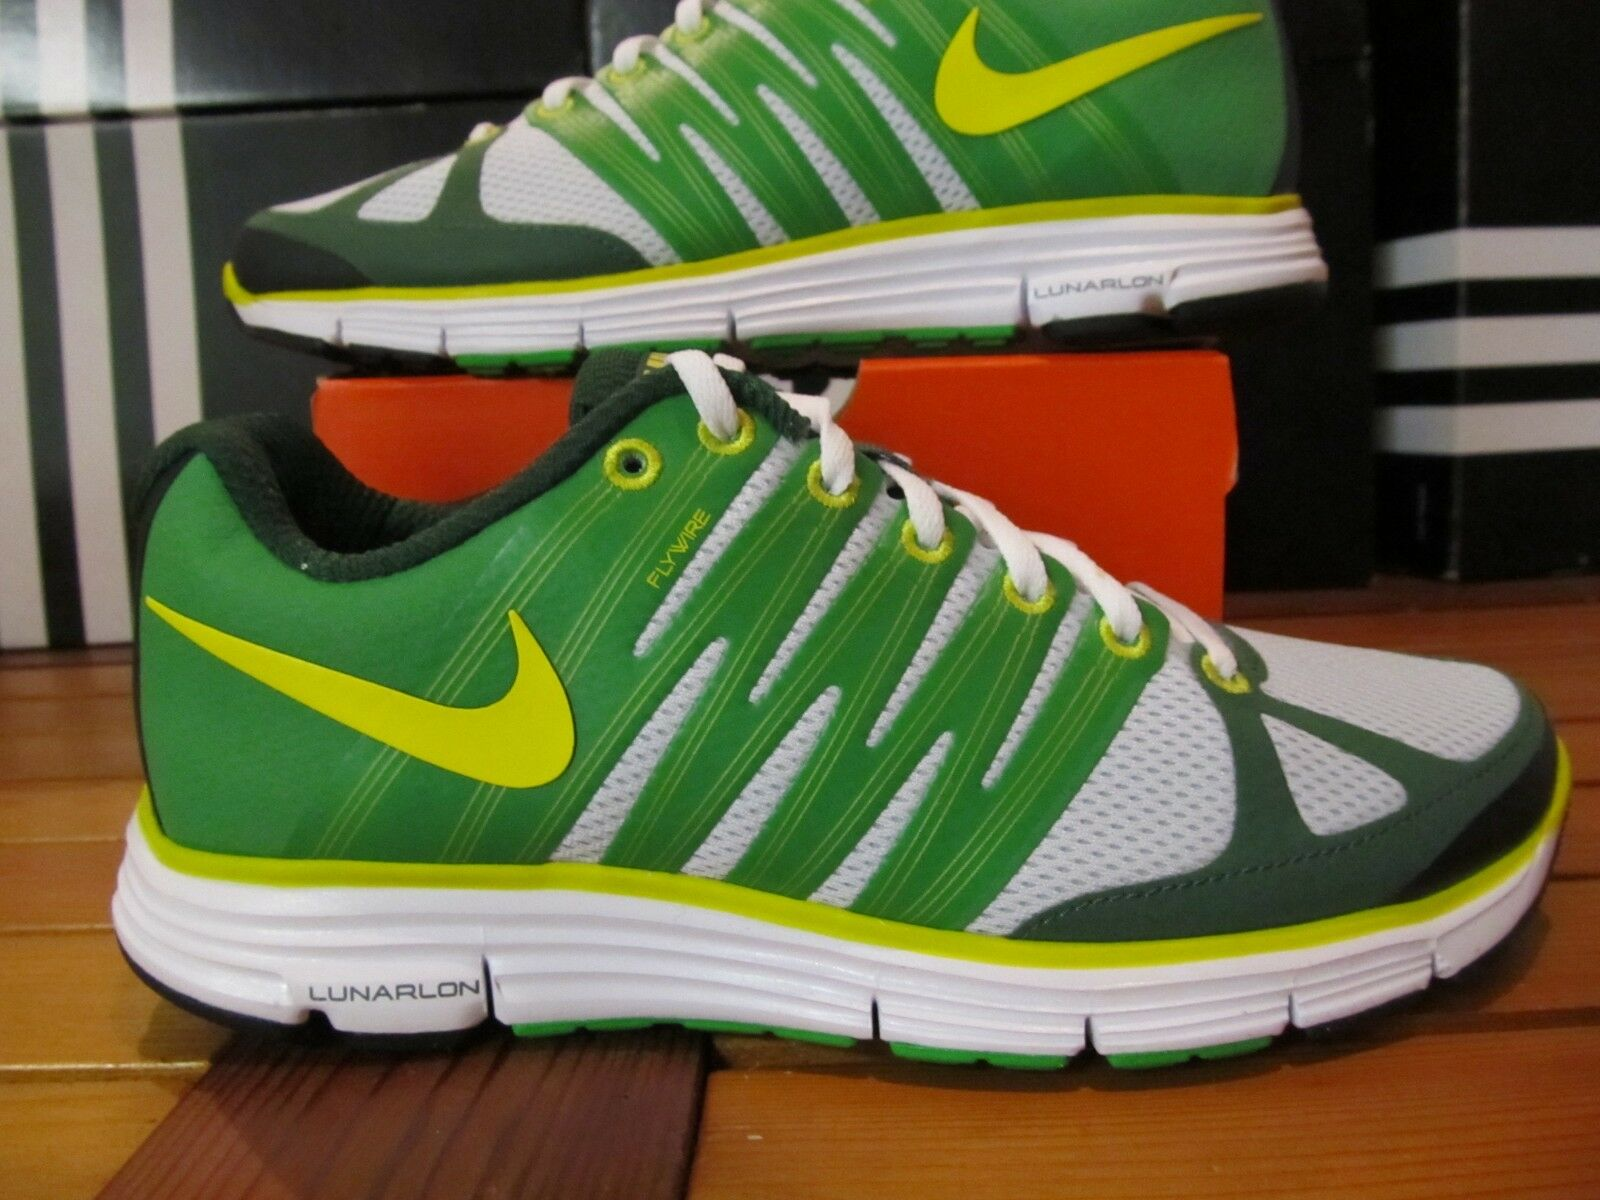 DS Wmns Nike Lunar Elite 2 Voltage Gorge Green 9.5 429783 008 Running shoes volt